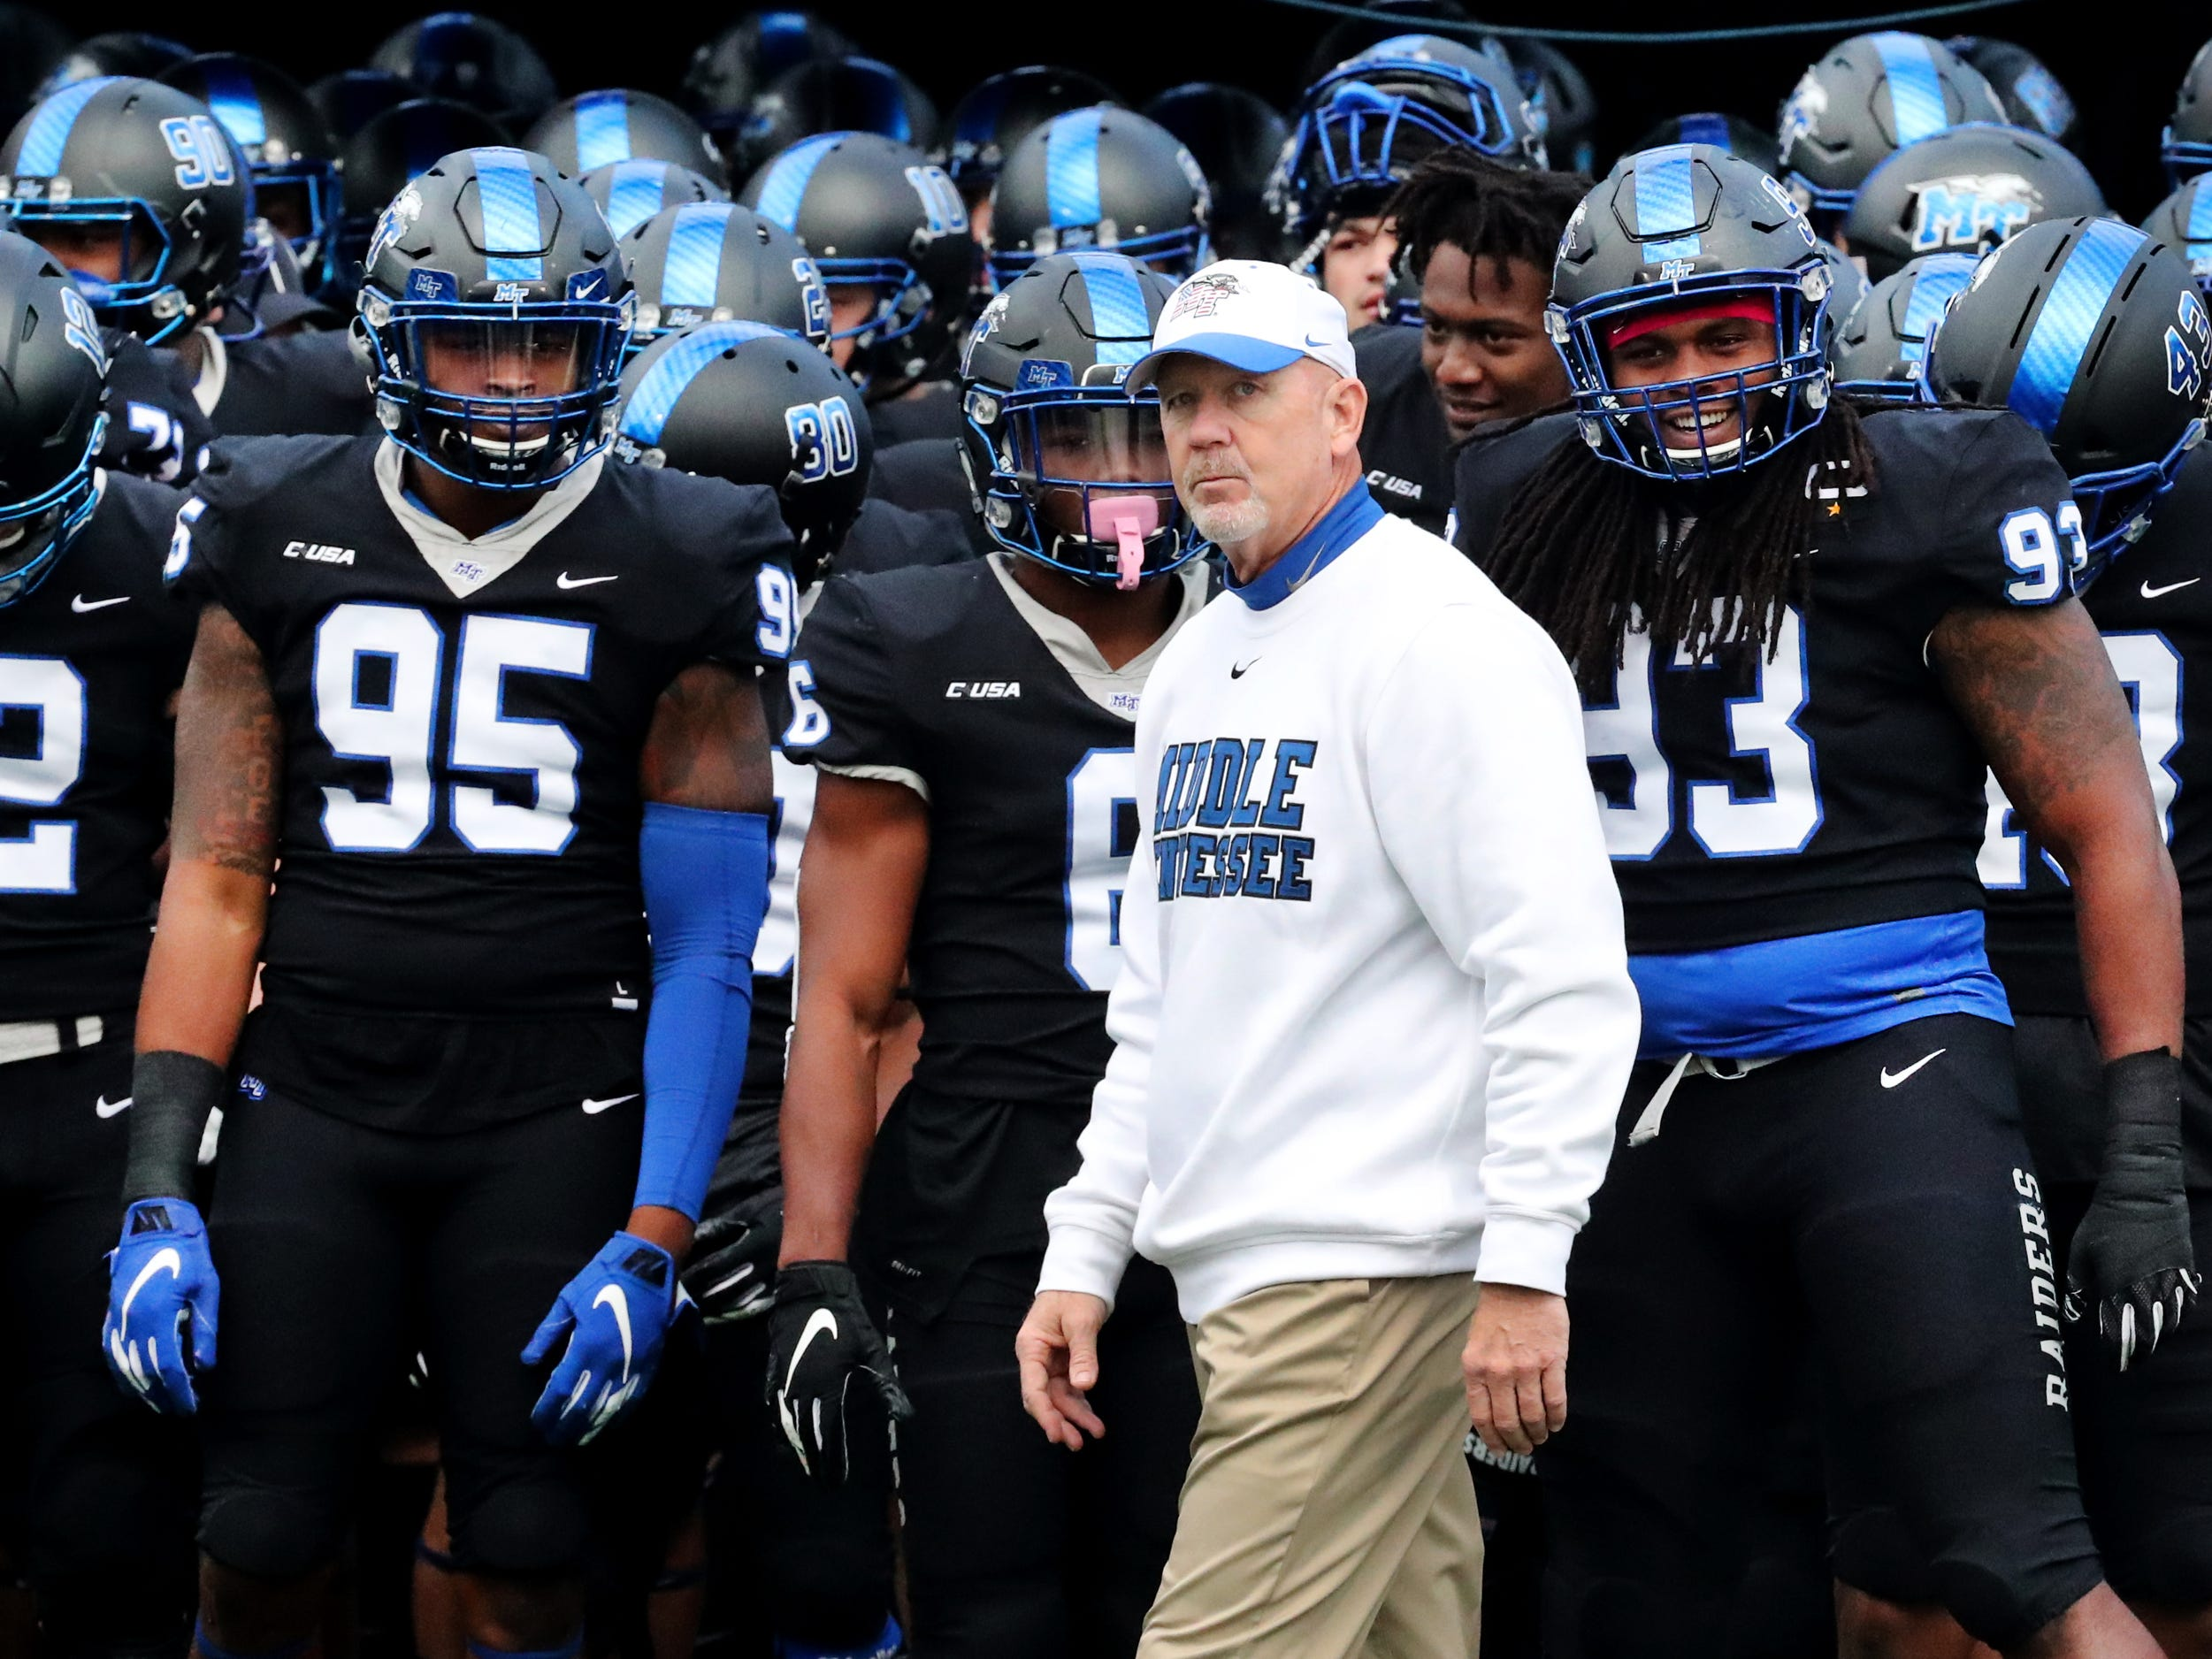 MTSU's head coach Rick Stockstill with the players before they run onto the field for the Conference USA Championship game against UAB at MTSU on Saturday, Dec. 1, 2018.